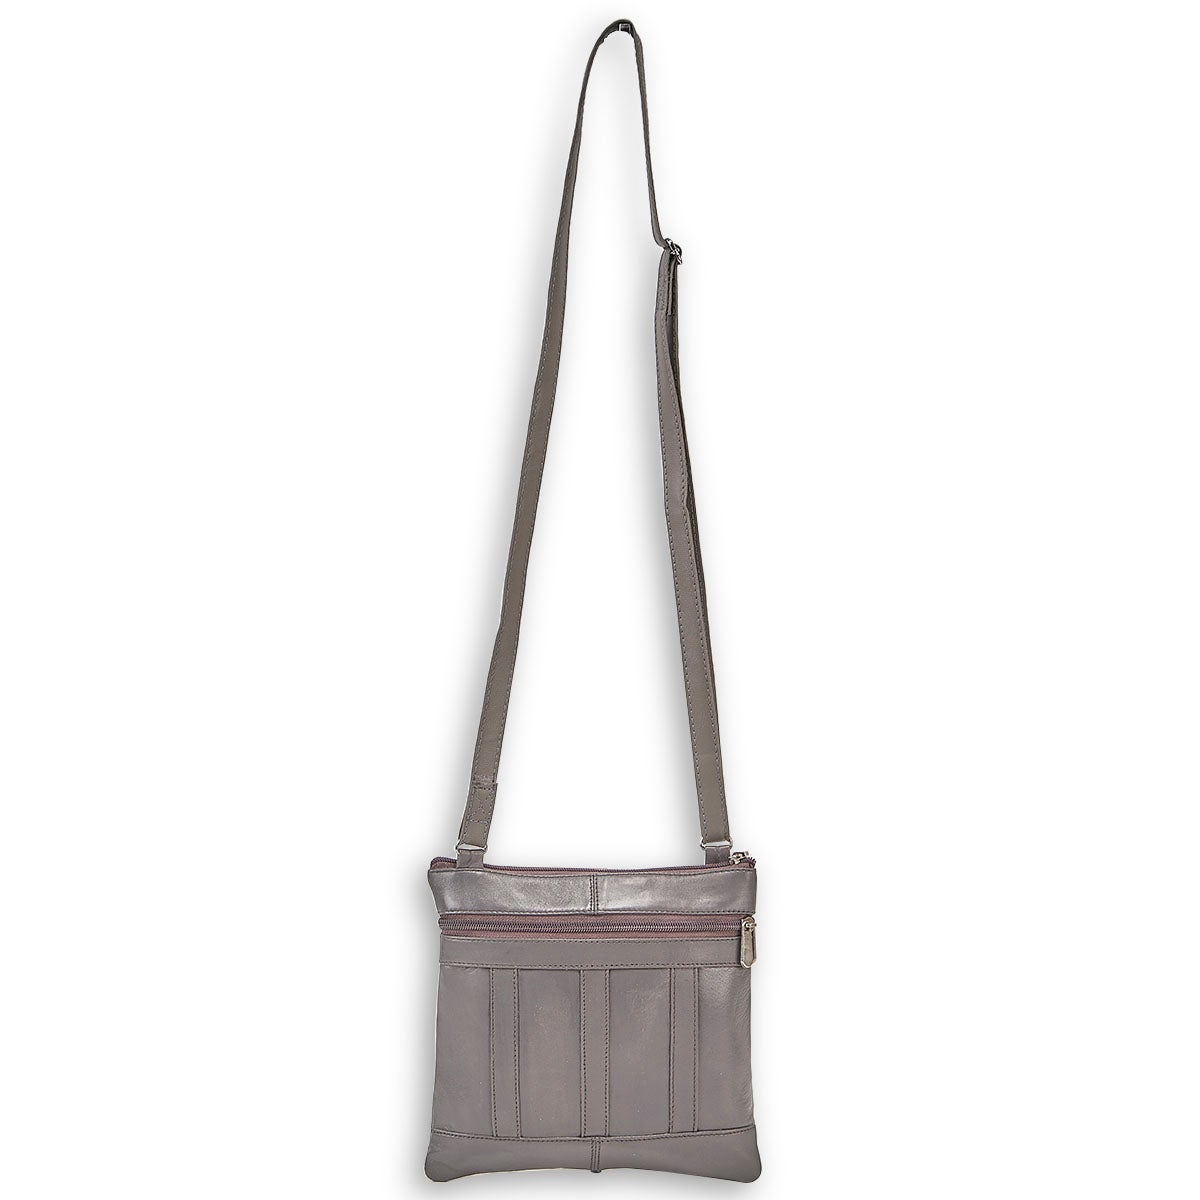 Lds gry sheep leather panelled crossbody